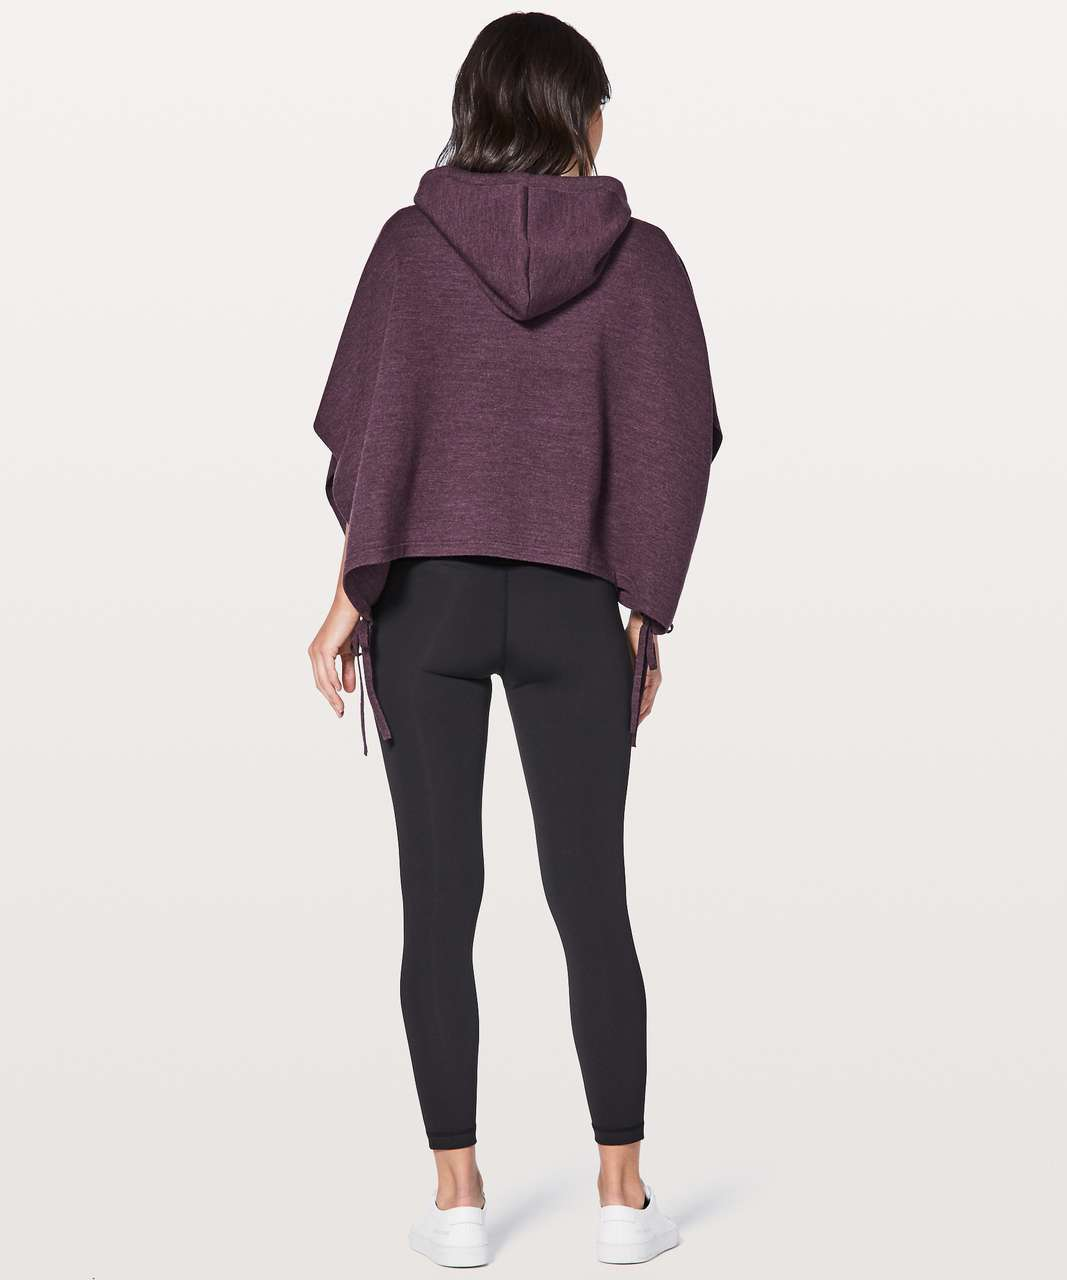 Lululemon All In A Day Hooded Poncho - Heathered Black Cherry